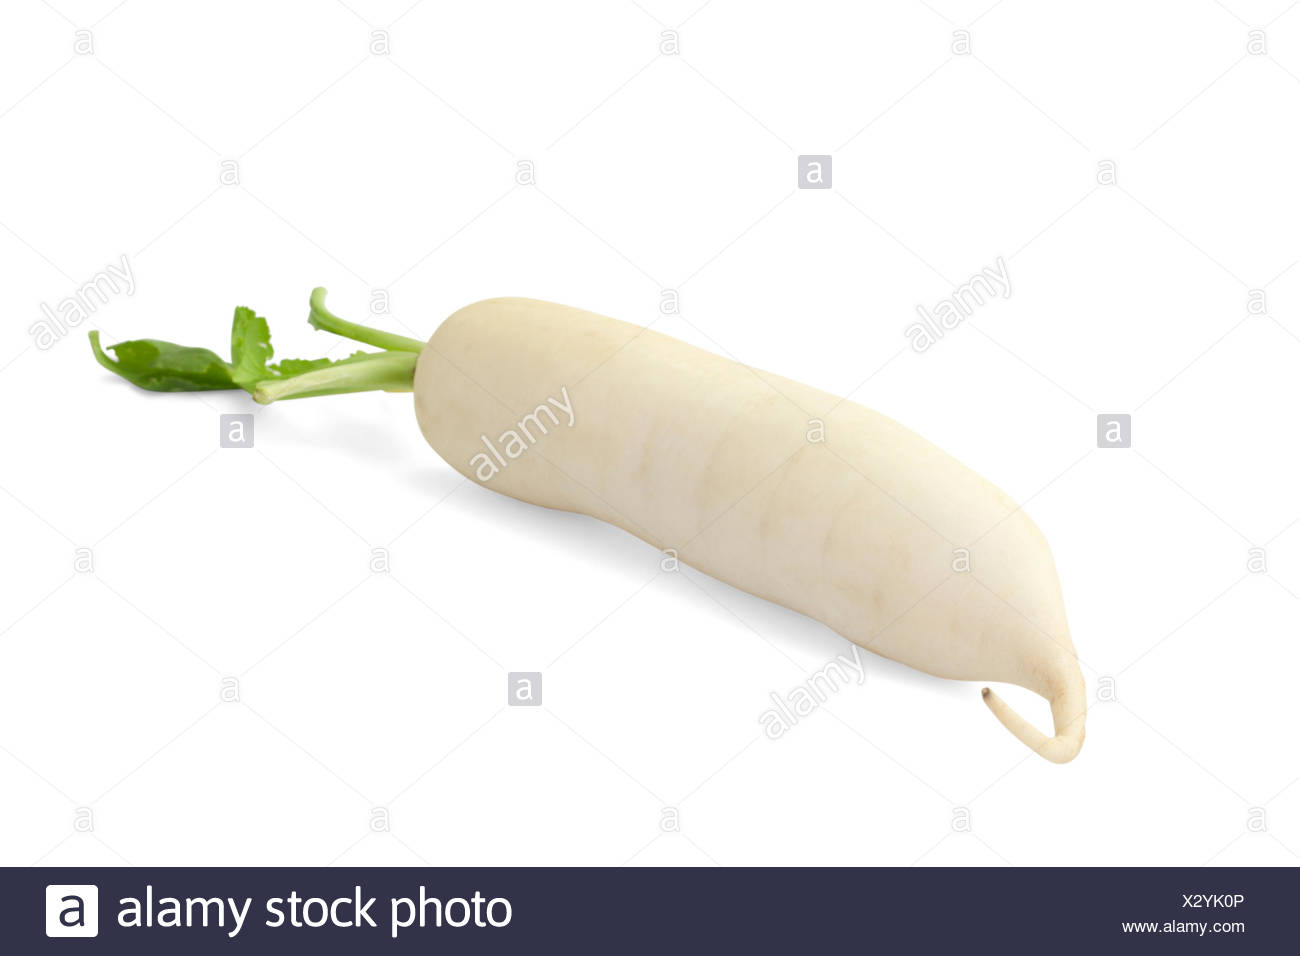 Daikon radish isolated on white background with path Stock Photo